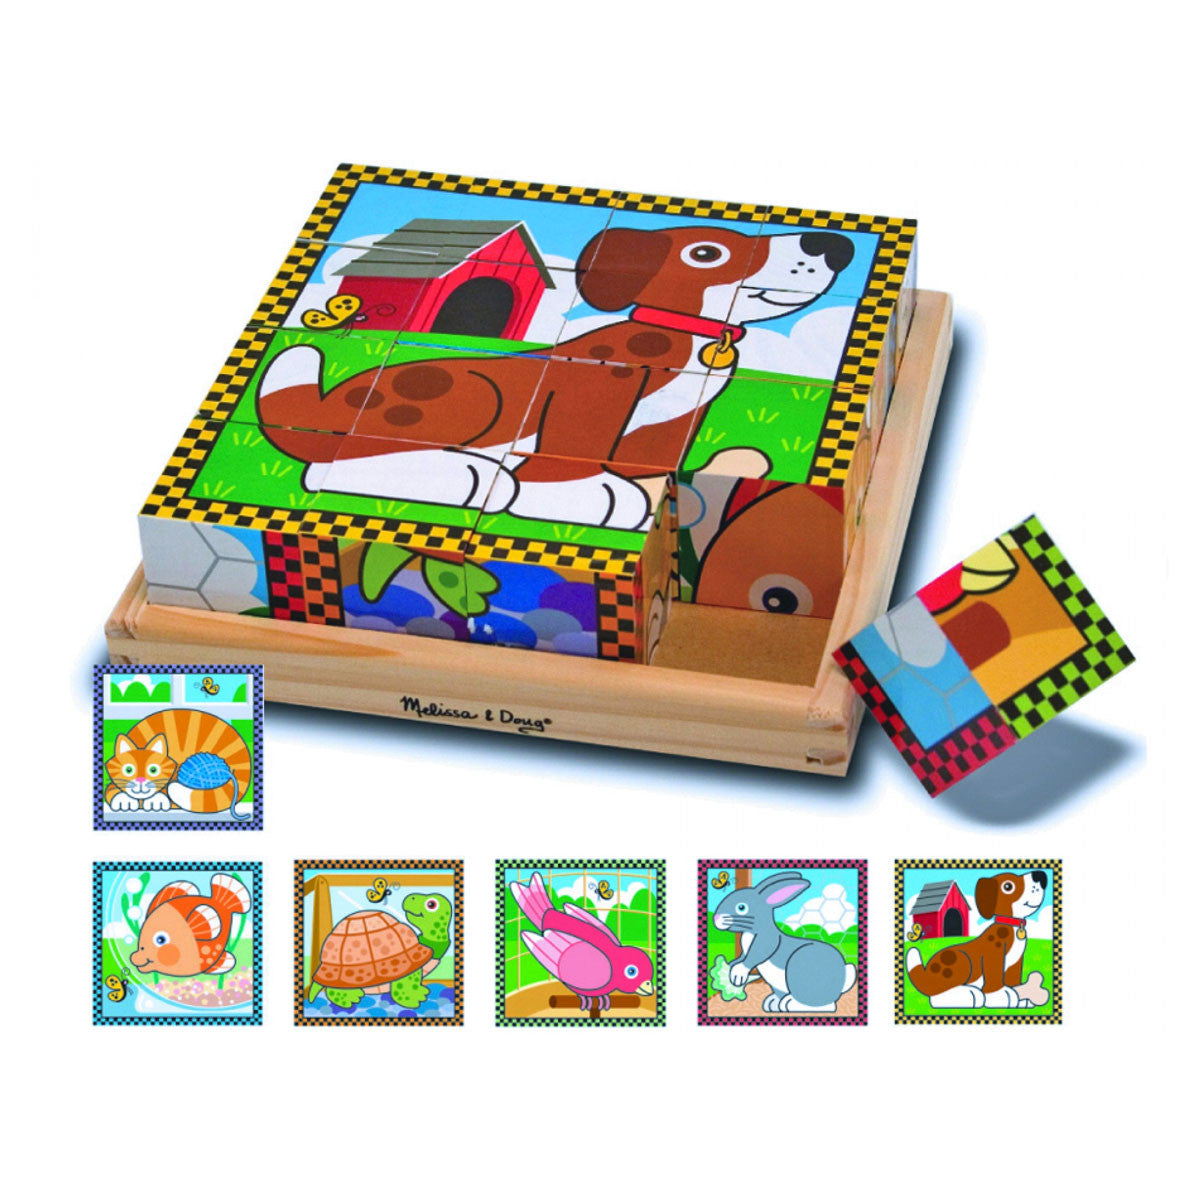 Melissa and Doug Cube Puzzle - 16 Piece Melissa and Doug Wooden Blocks Pets at Little Earth Nest Eco Shop